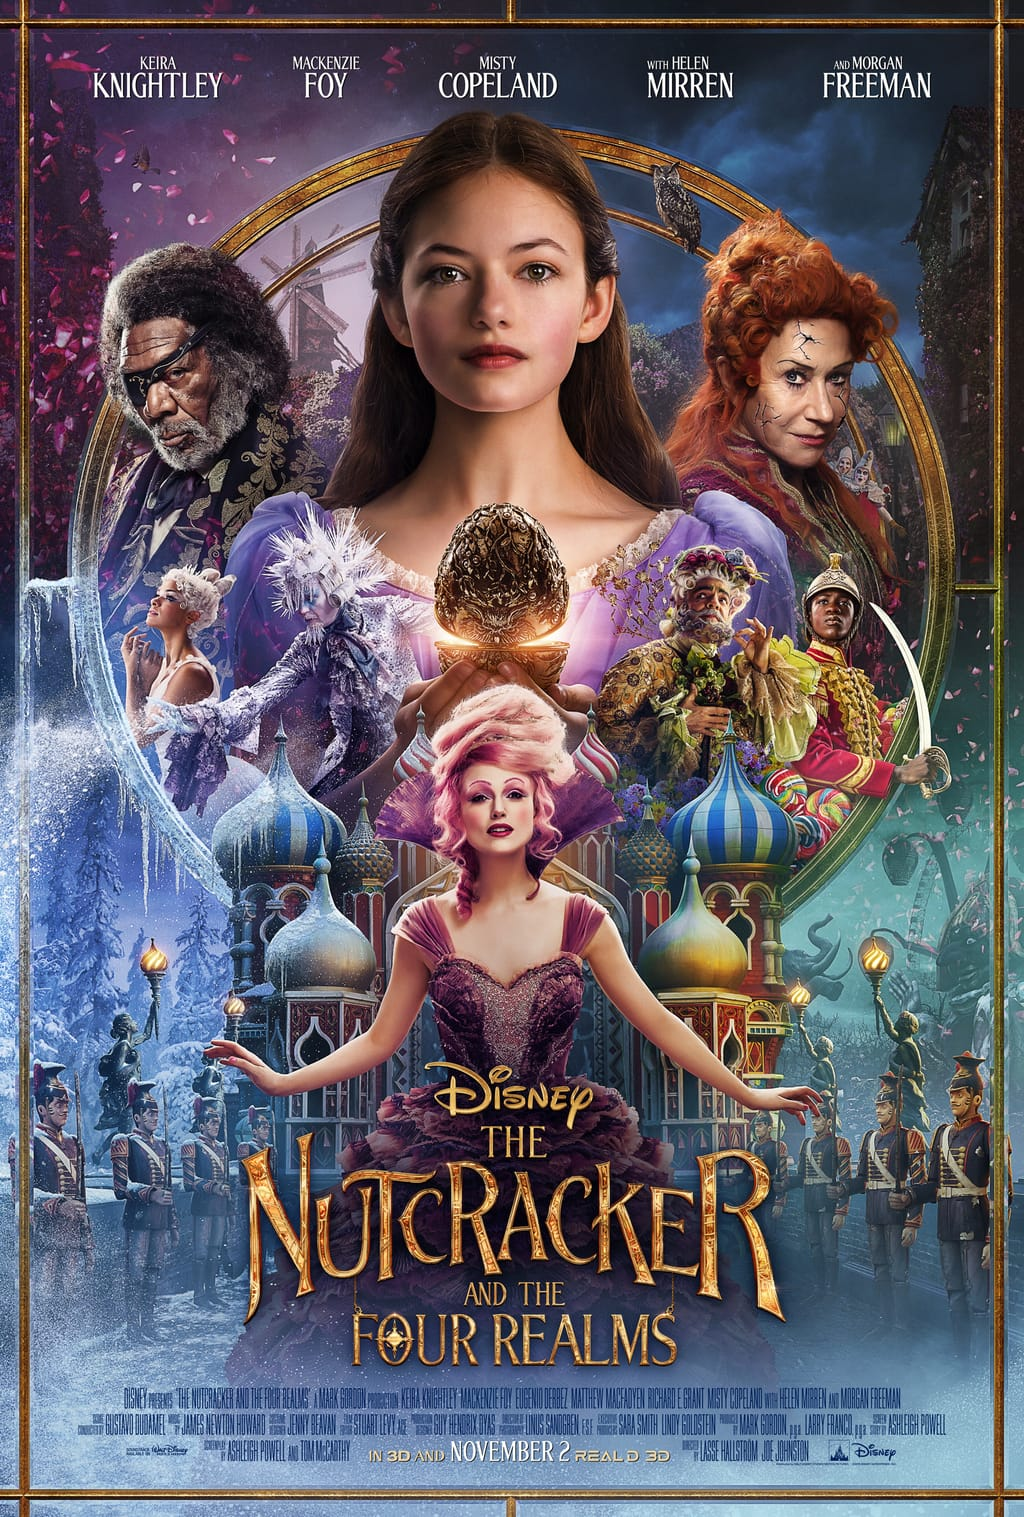 Disney's The Nutcracker and the Four Realms poster